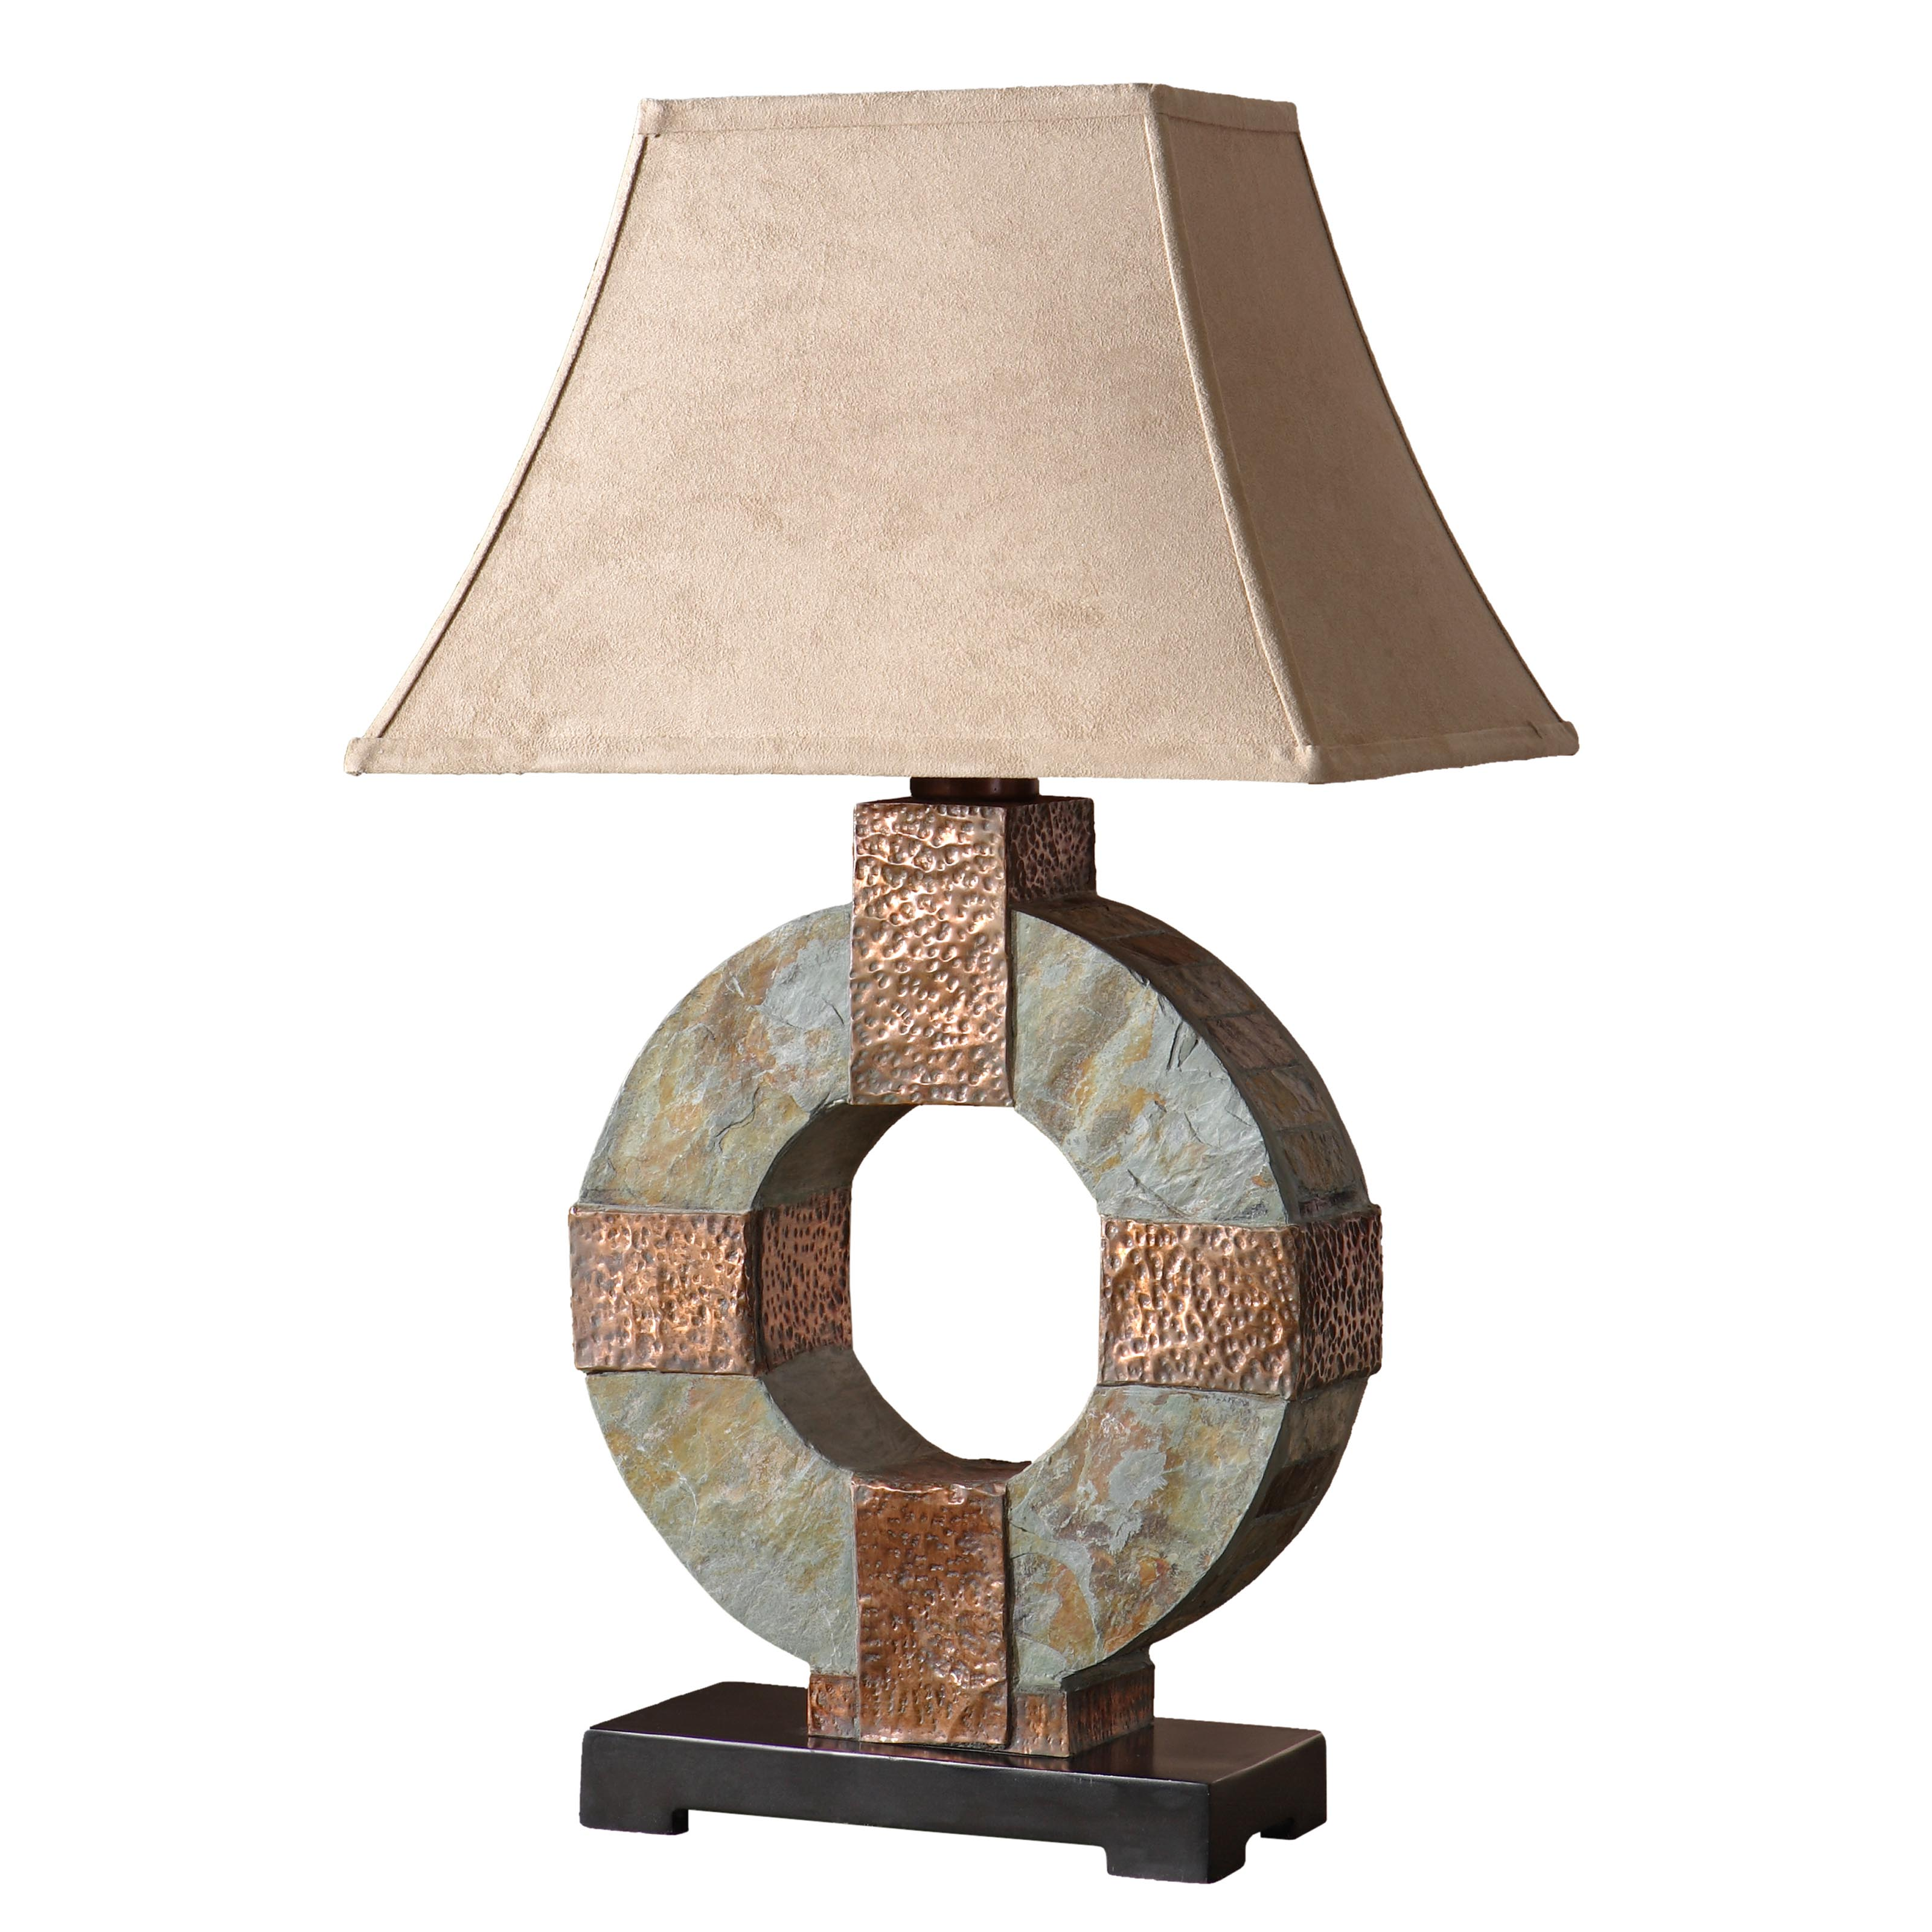 Outdoor Table Lamp Led: Uttermost Slate Outdoor Table Lamp